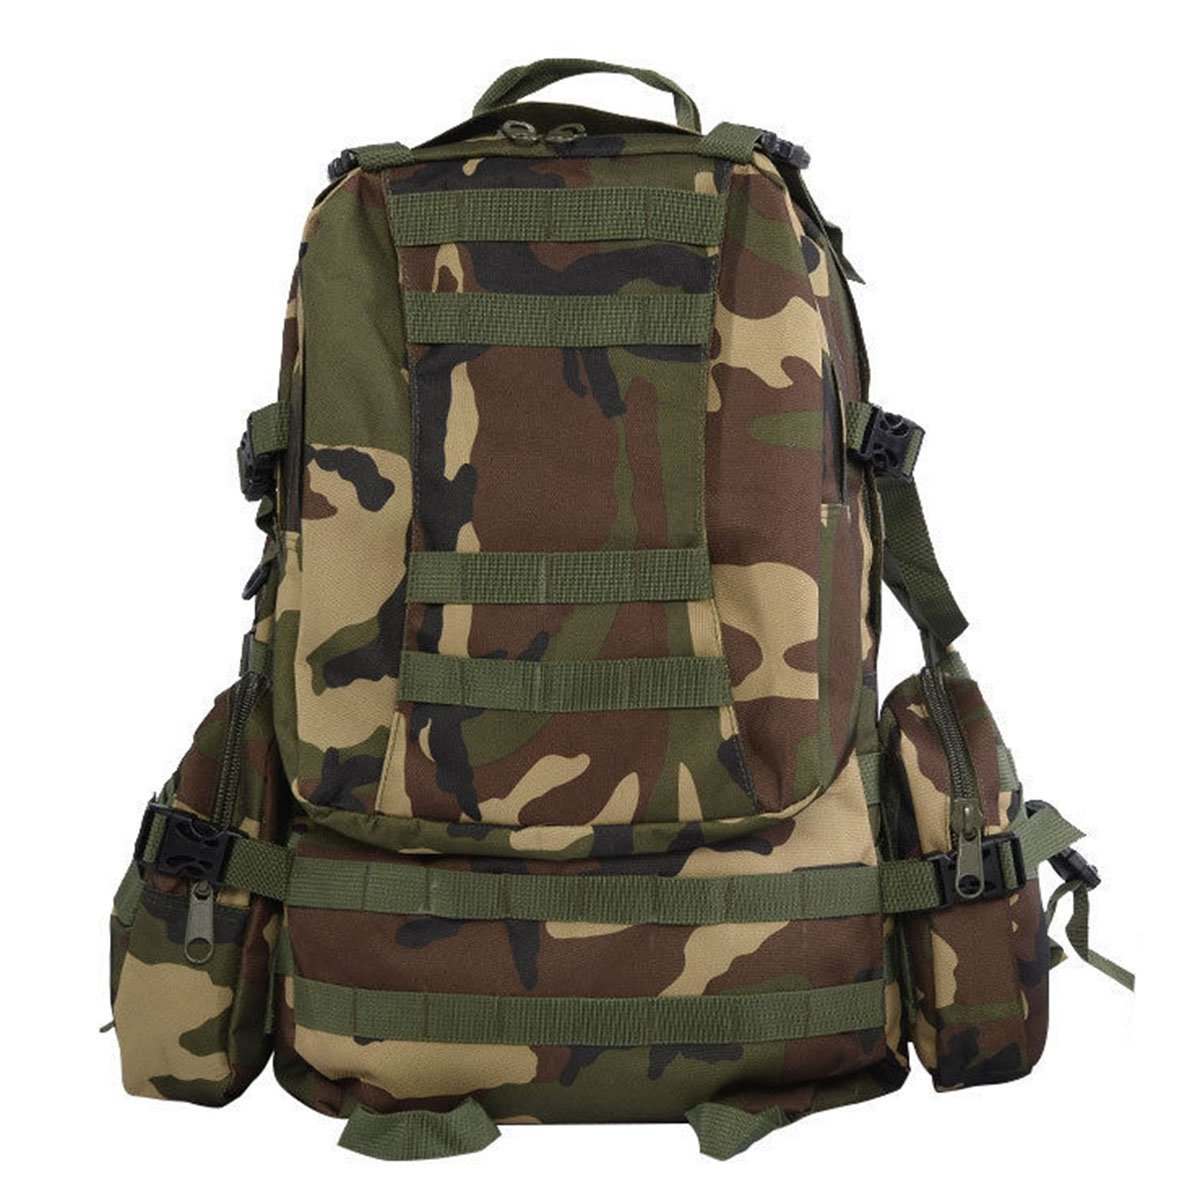 Goplus New 55L Outdoor Military Tactical Backpack Rucksack Camping Bag Hiking Backpack